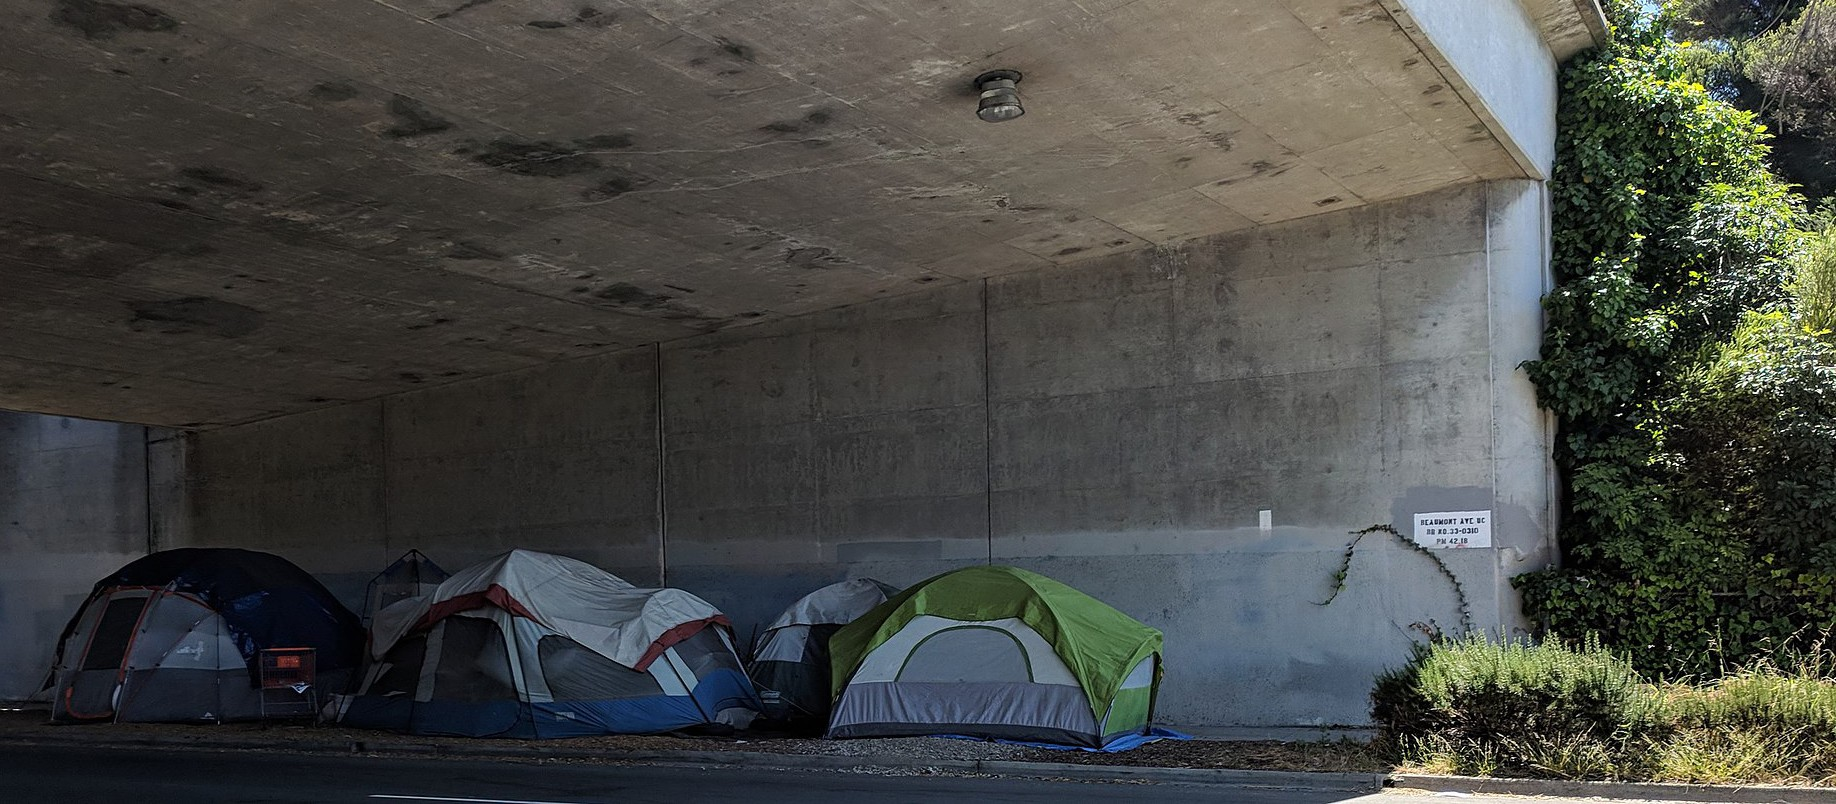 Tent encampments are popping up across Peel in the age of COVID-19; a recent UN report says Canada is failing on the issue